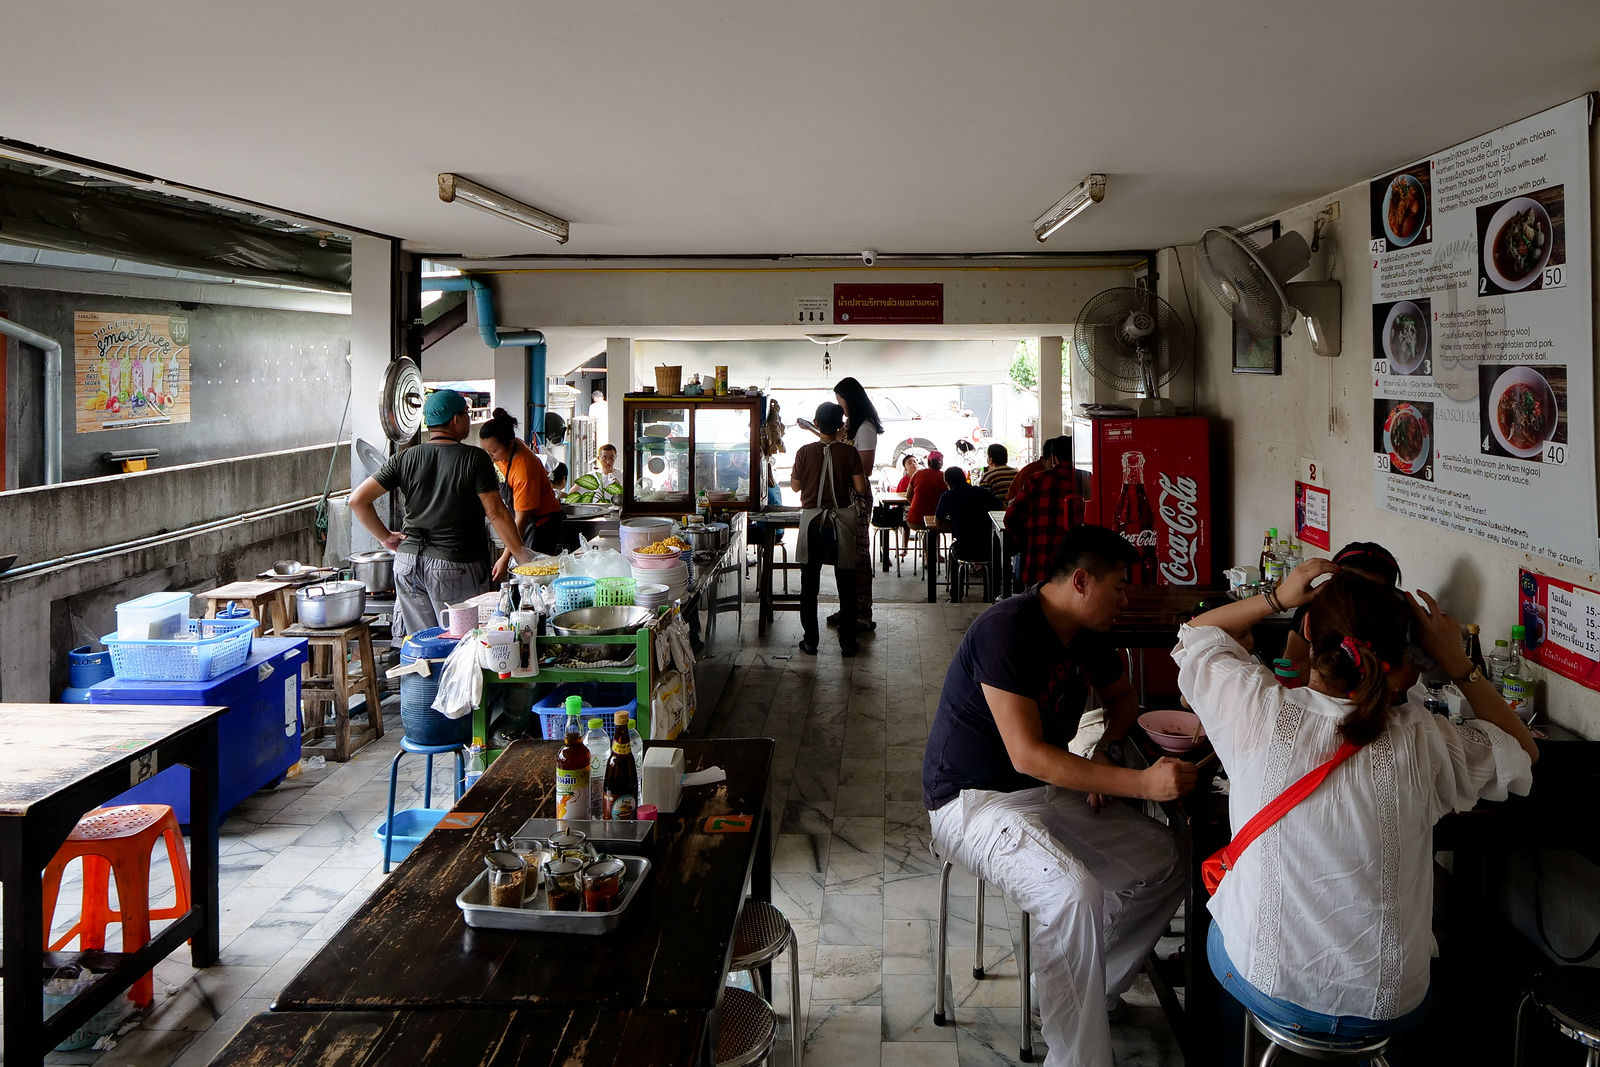 Khao Soi Mae Sai can serve customers from many countries, most of their staff are young, and they have great language skills.